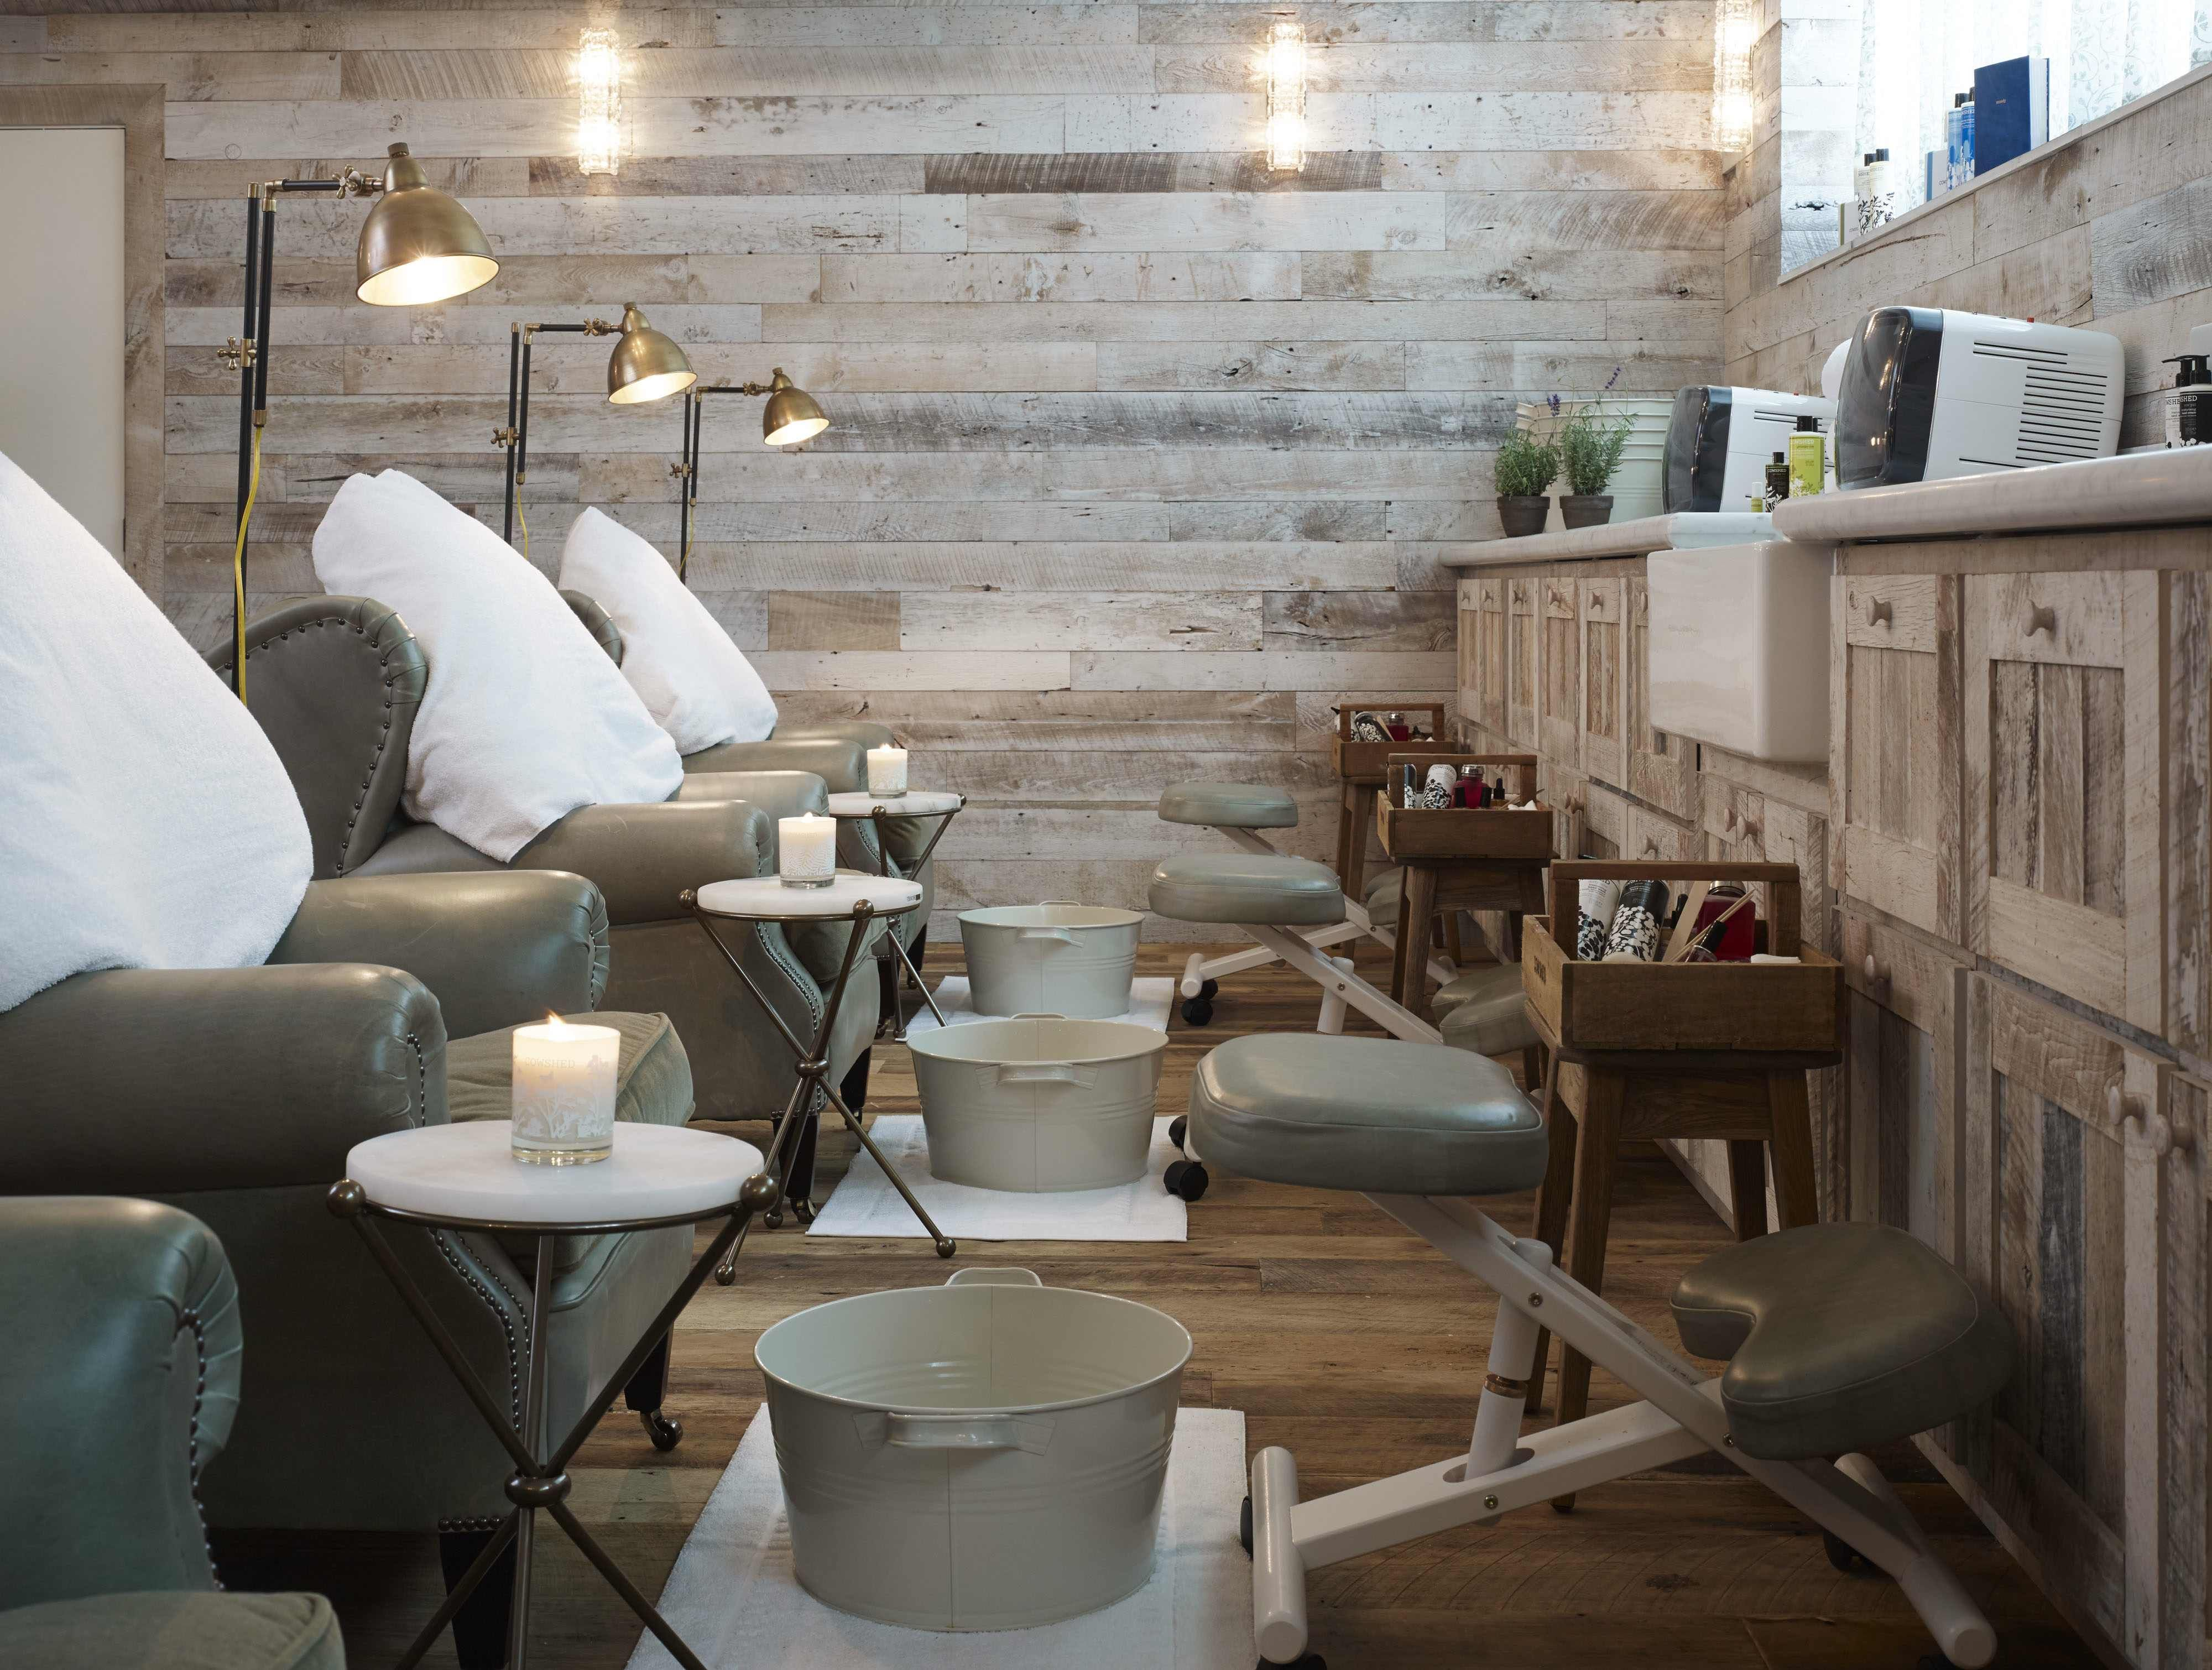 Salon Cosy Chic Cowshed Spa In Chicago Has A Cozy Chic Rustic Interior